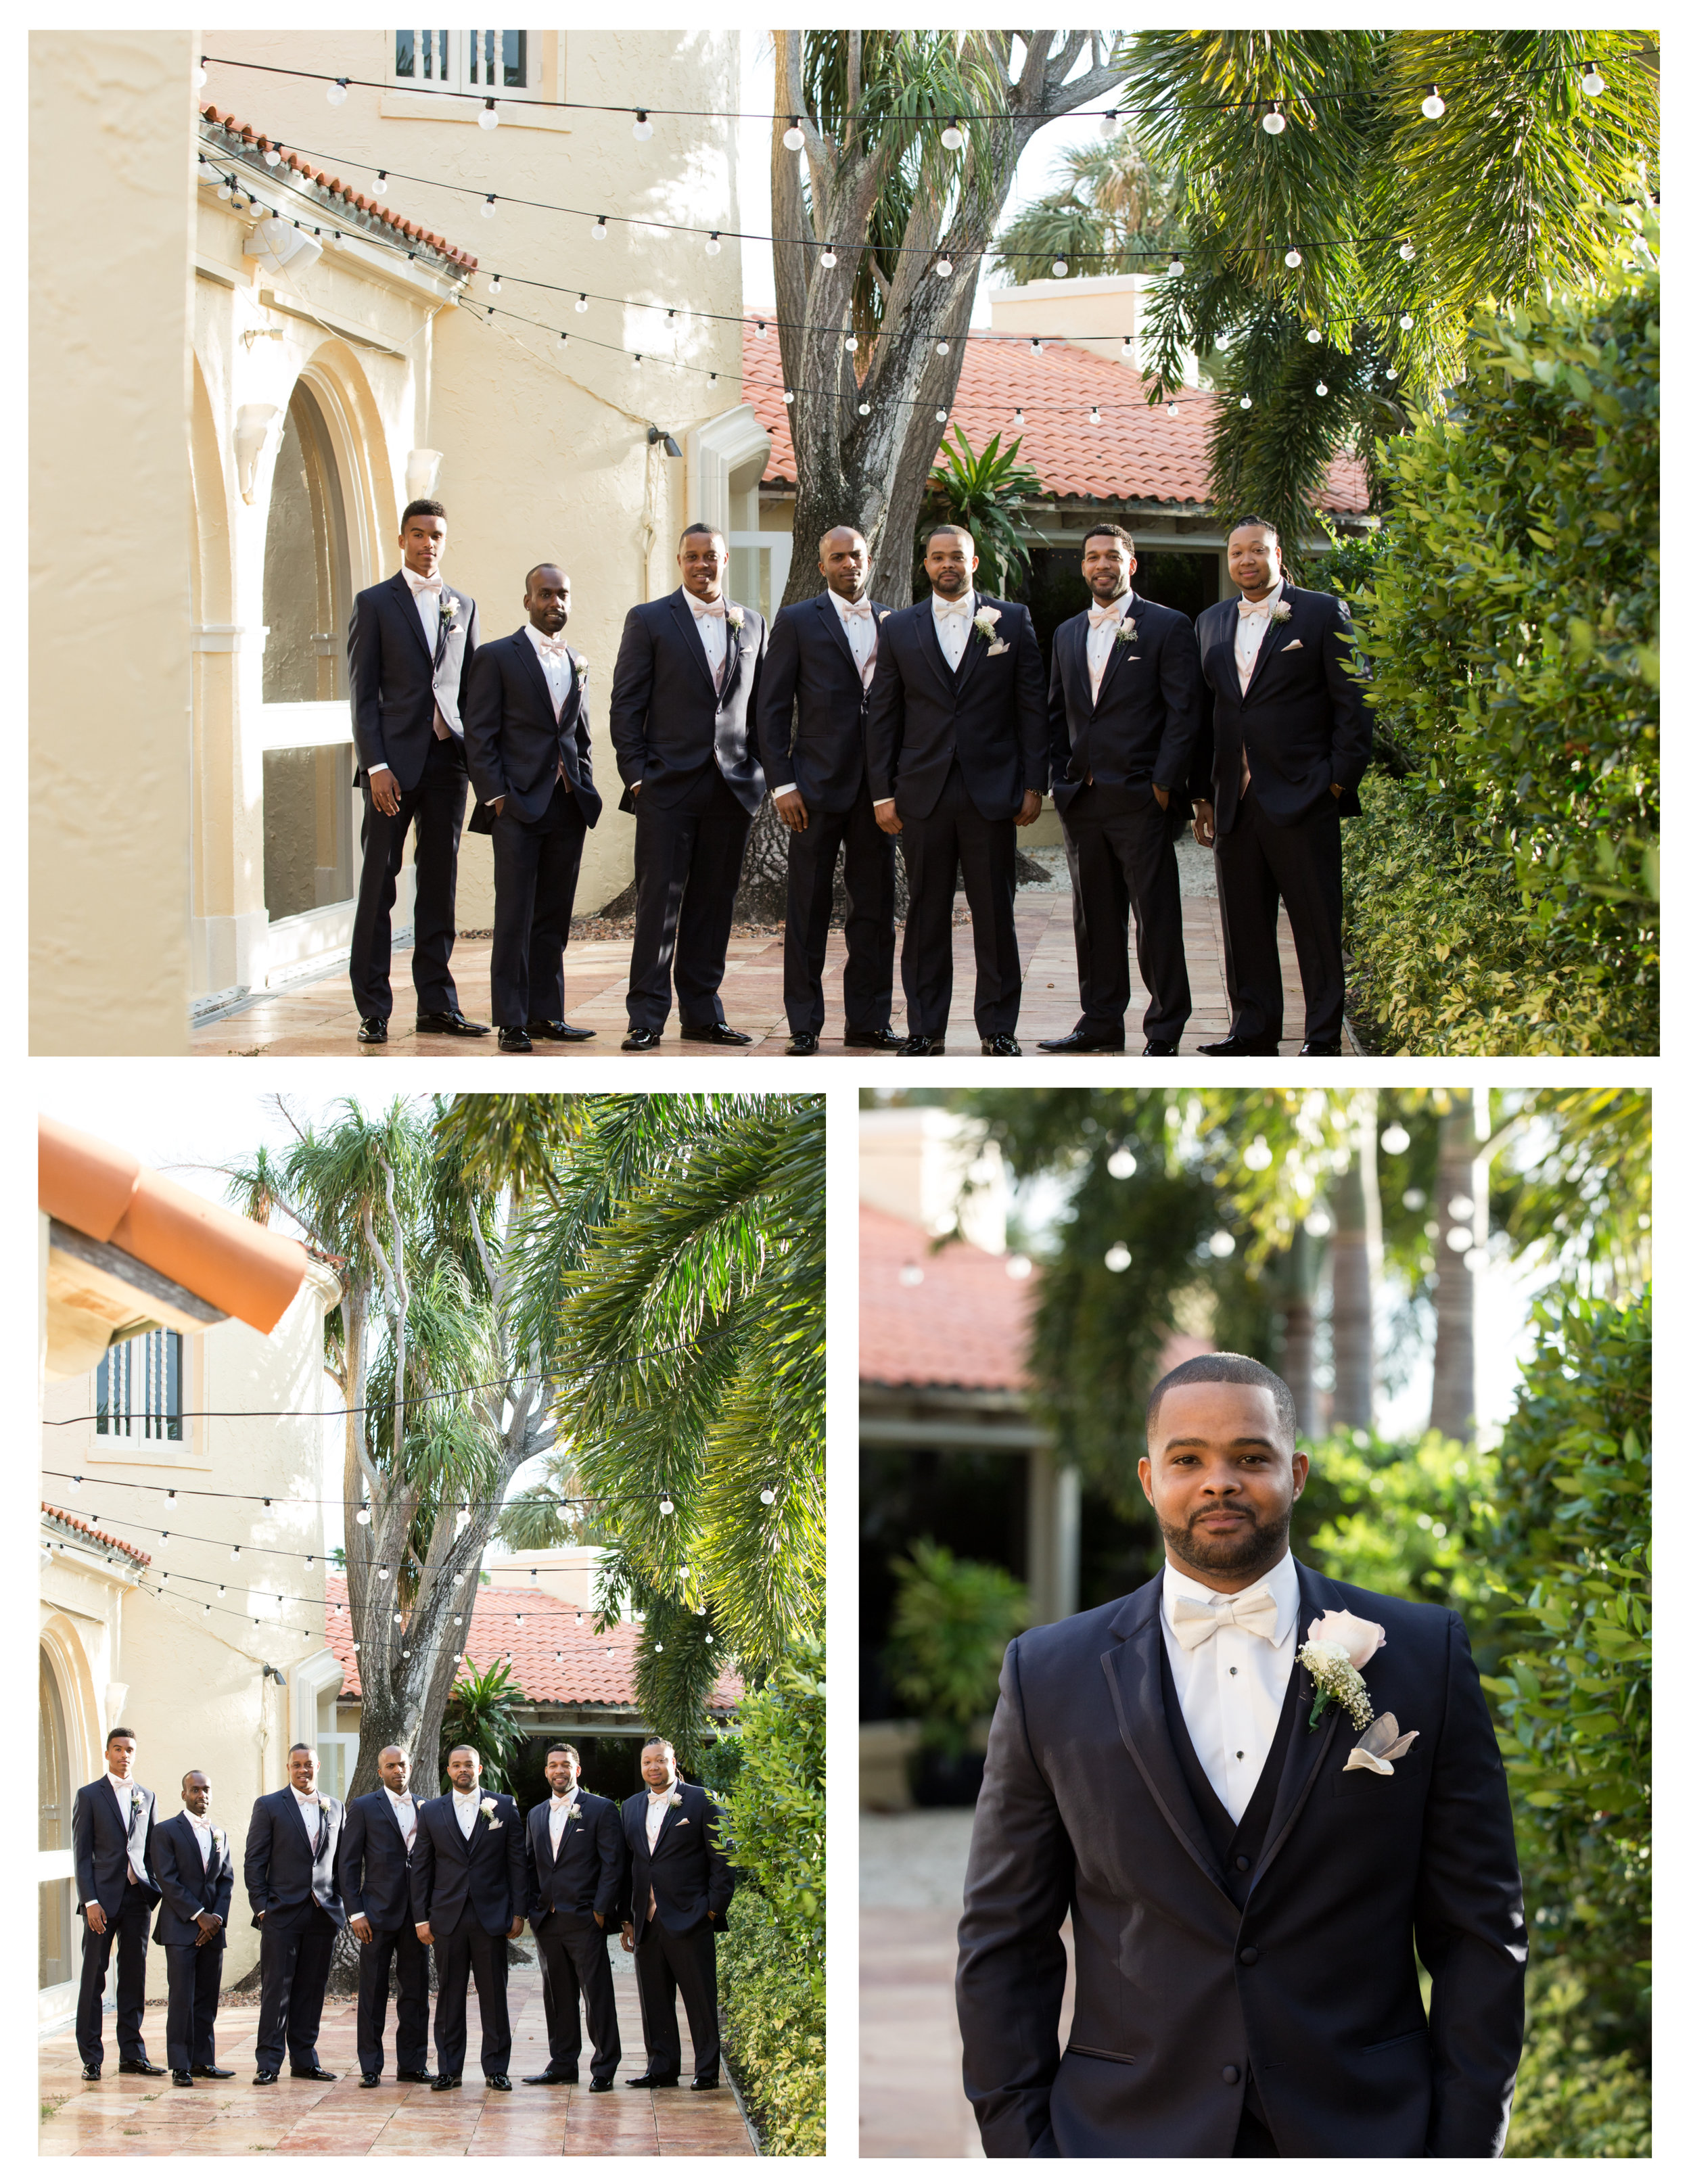 Benvenuto_wedding_Boynton_Beach_Jodi_Fjelde_Photography_Nikki_Otis_married_8.jpg